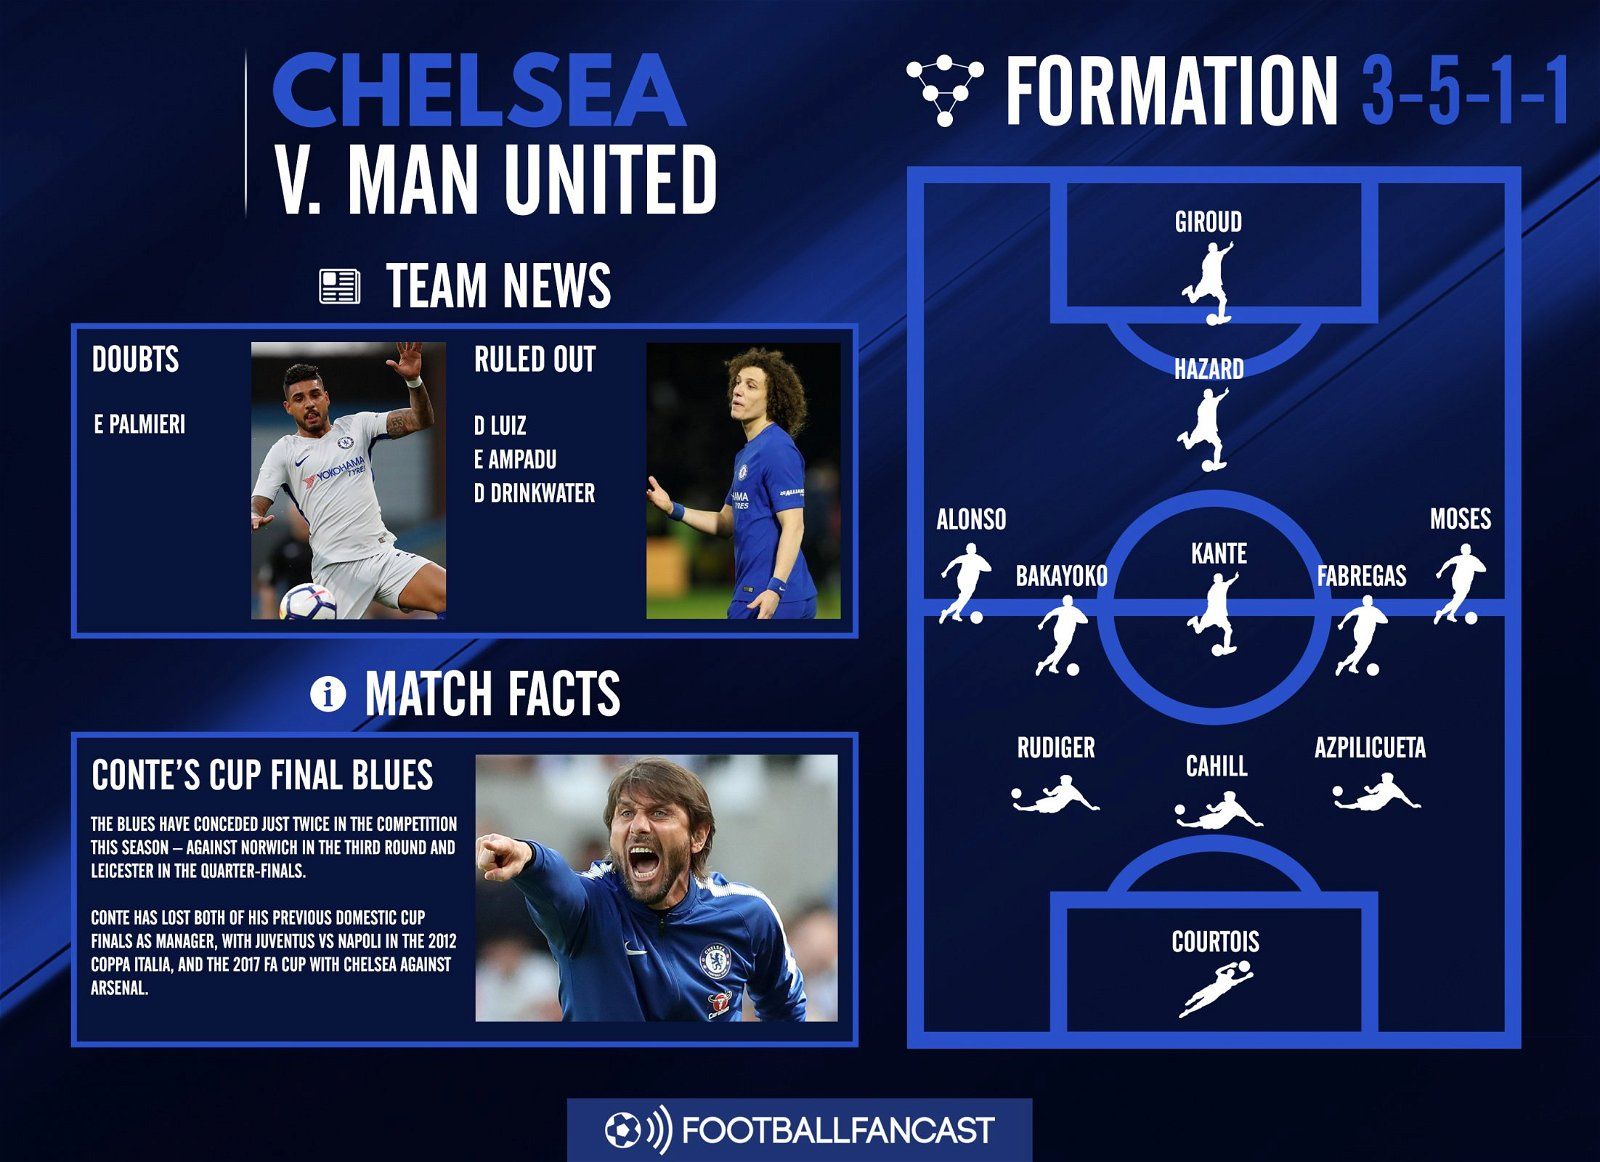 Chelsea Team News for Manchester United clash